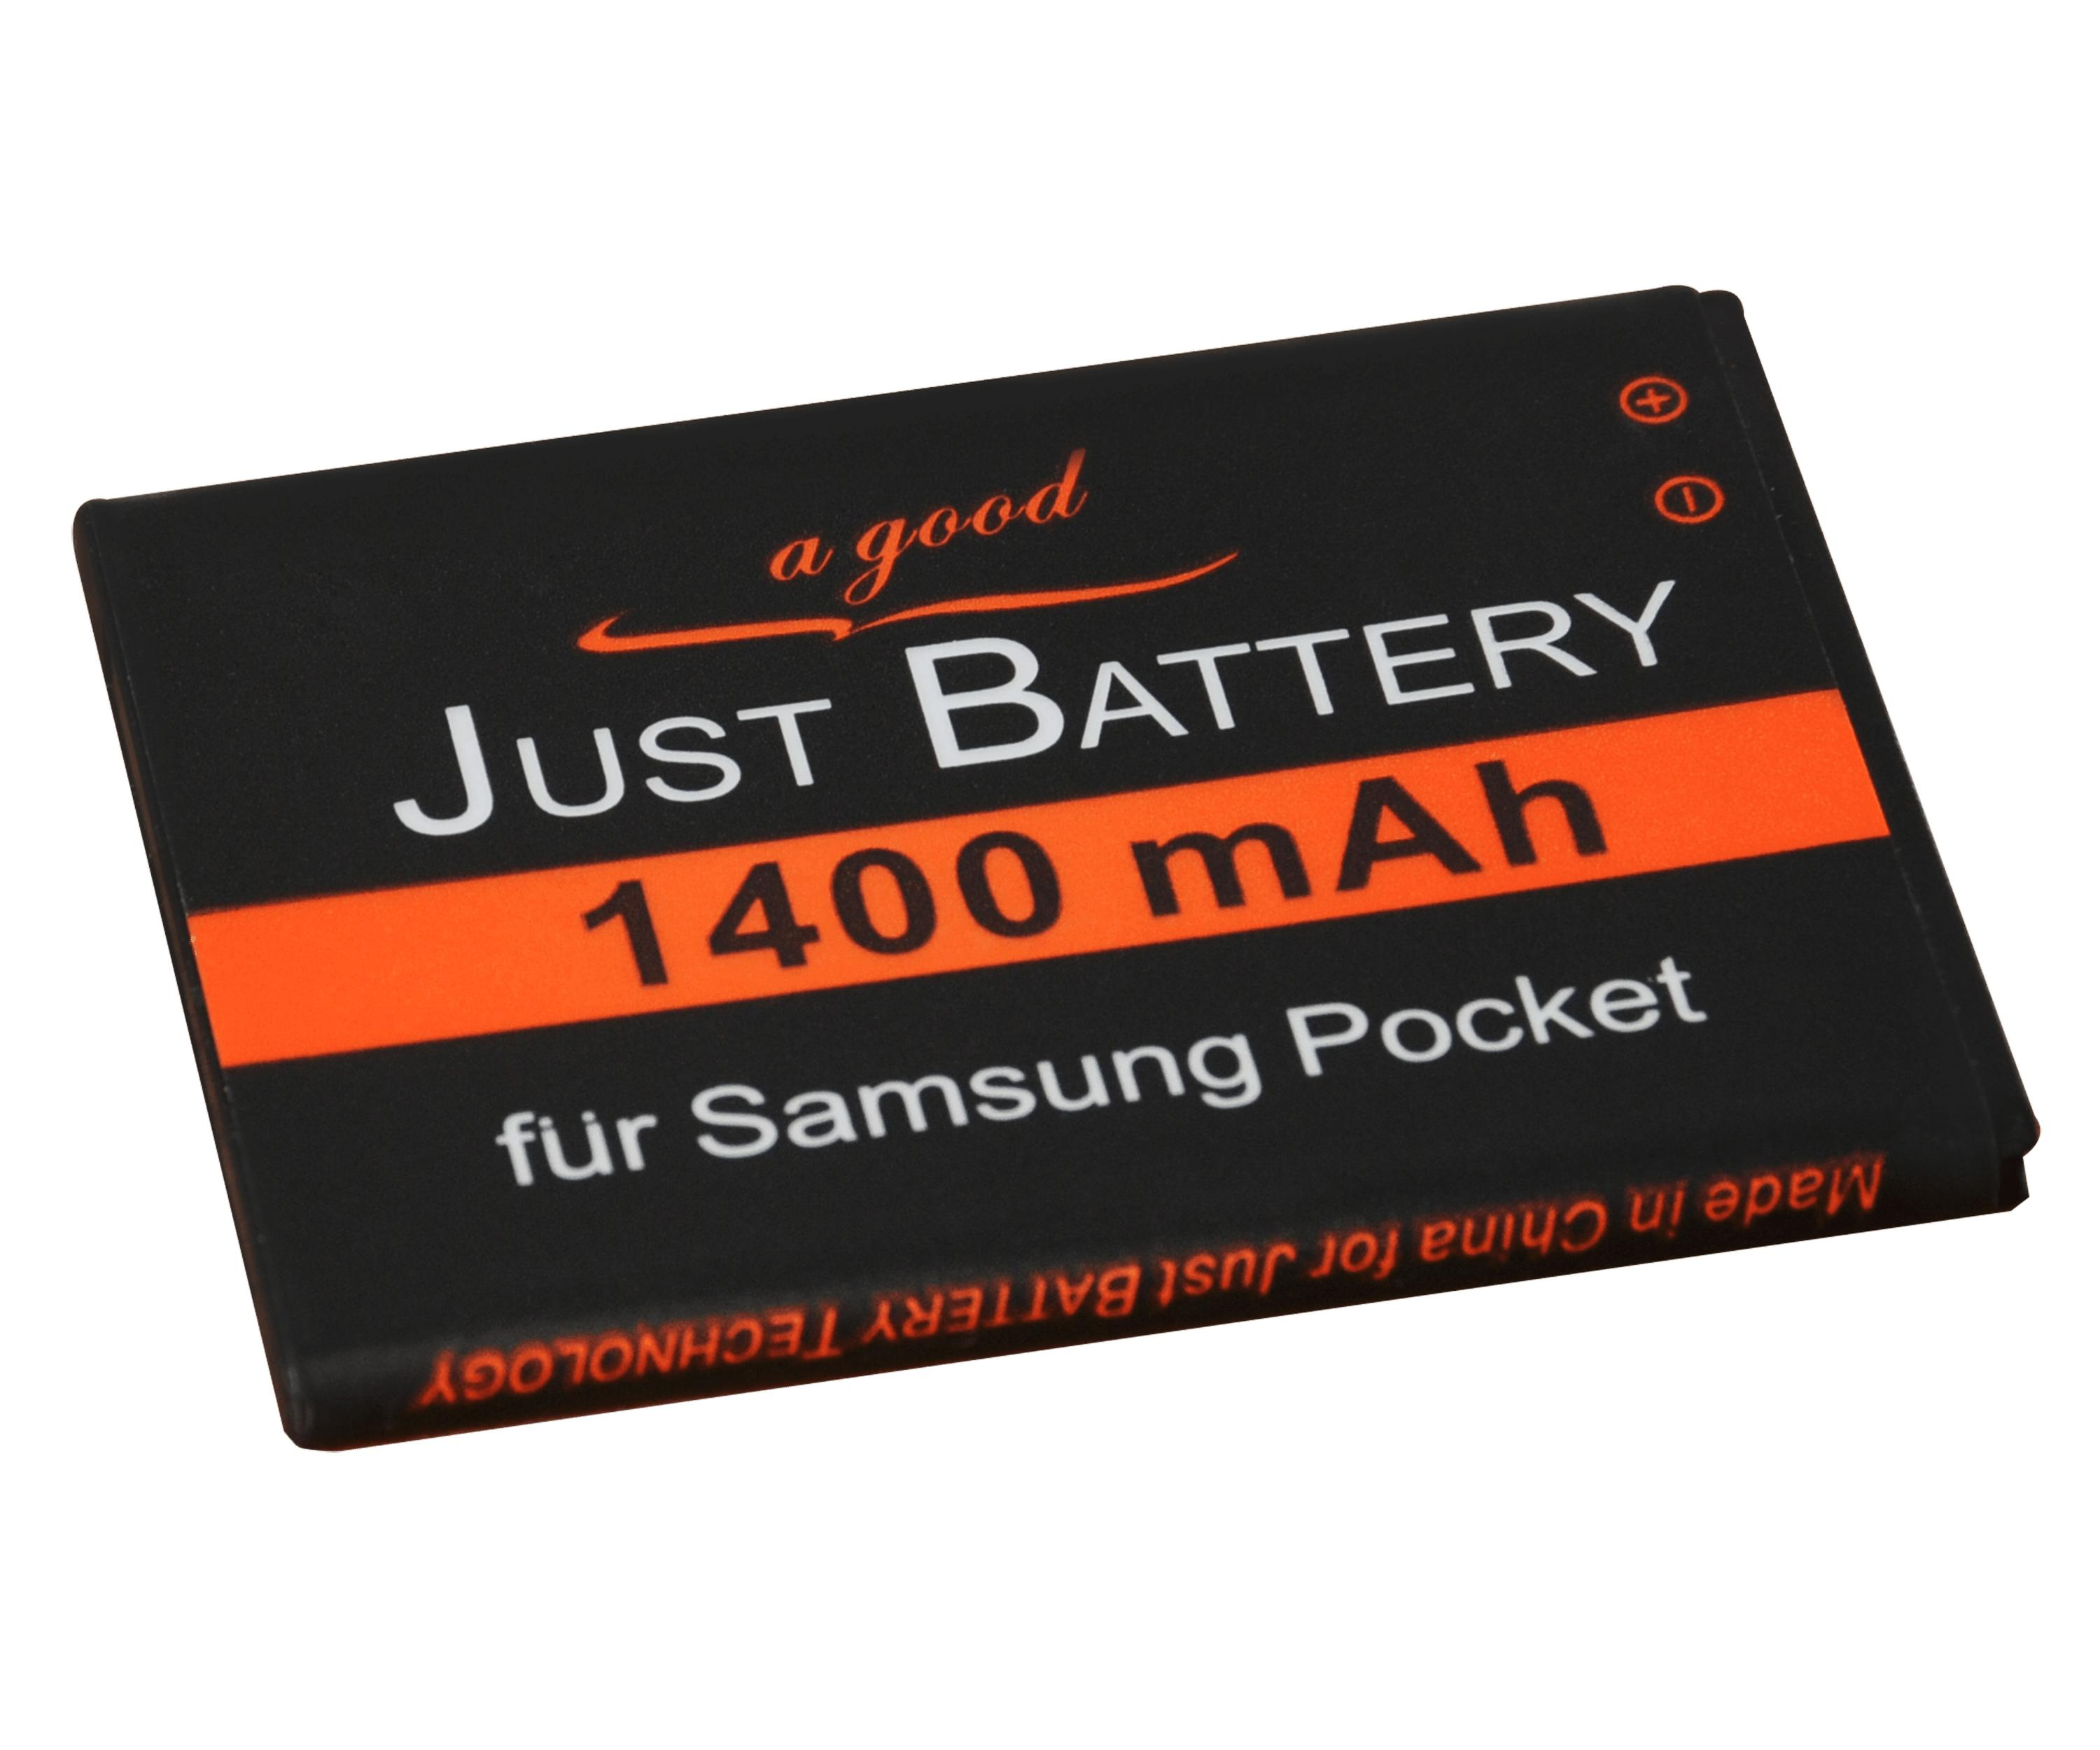 Battery for Samsung Galaxy Y Pro B5510